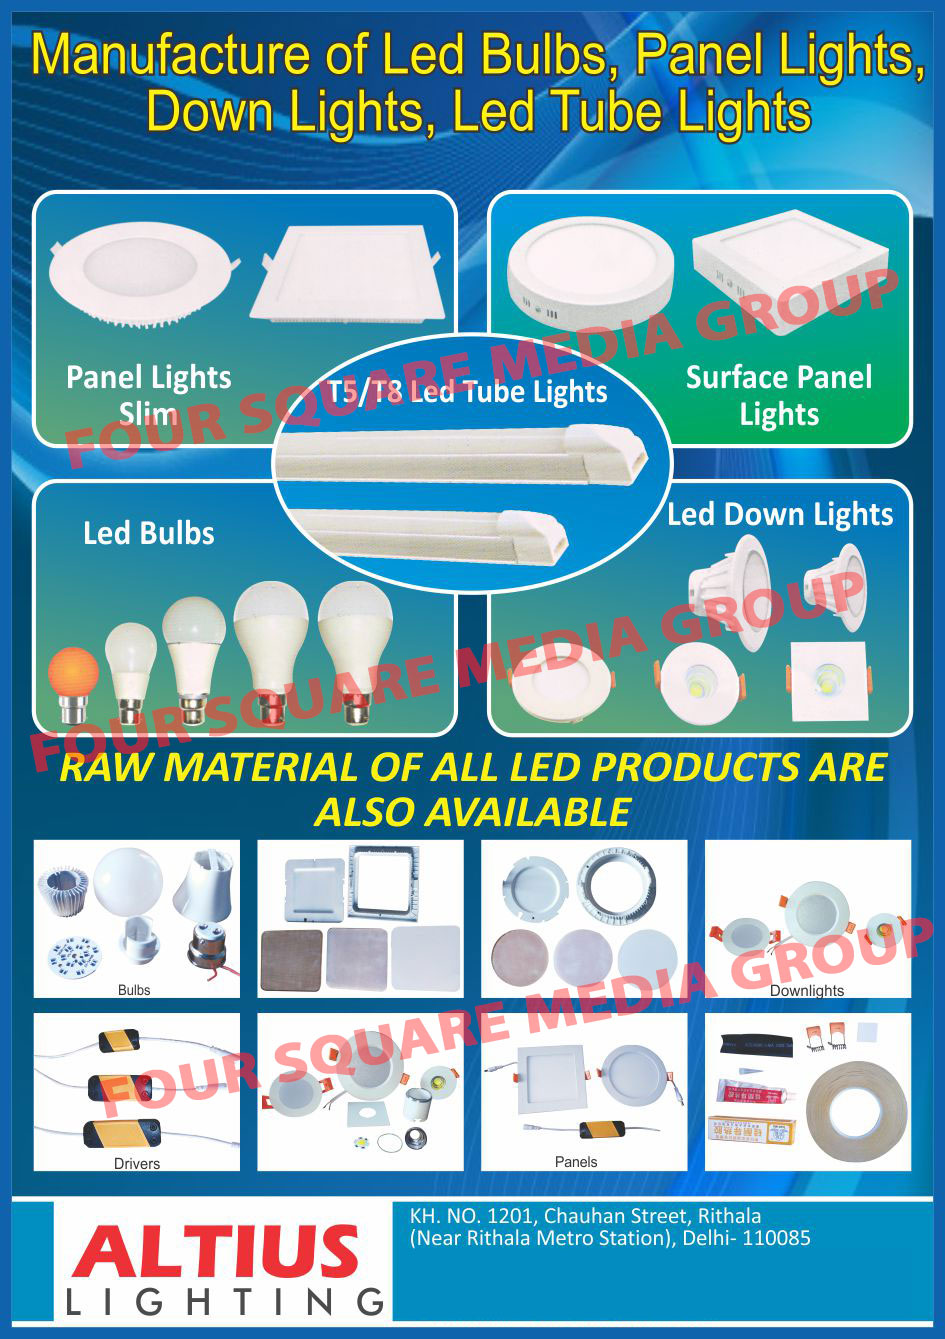 Led Lights, Led Bulbs, Led Panel Lights, Led Down Lights, Led Tube Lights, Led Panel Light Slims, Led Surface Panel Lights, Led Raw Materials, Led Drivers, Led Panels